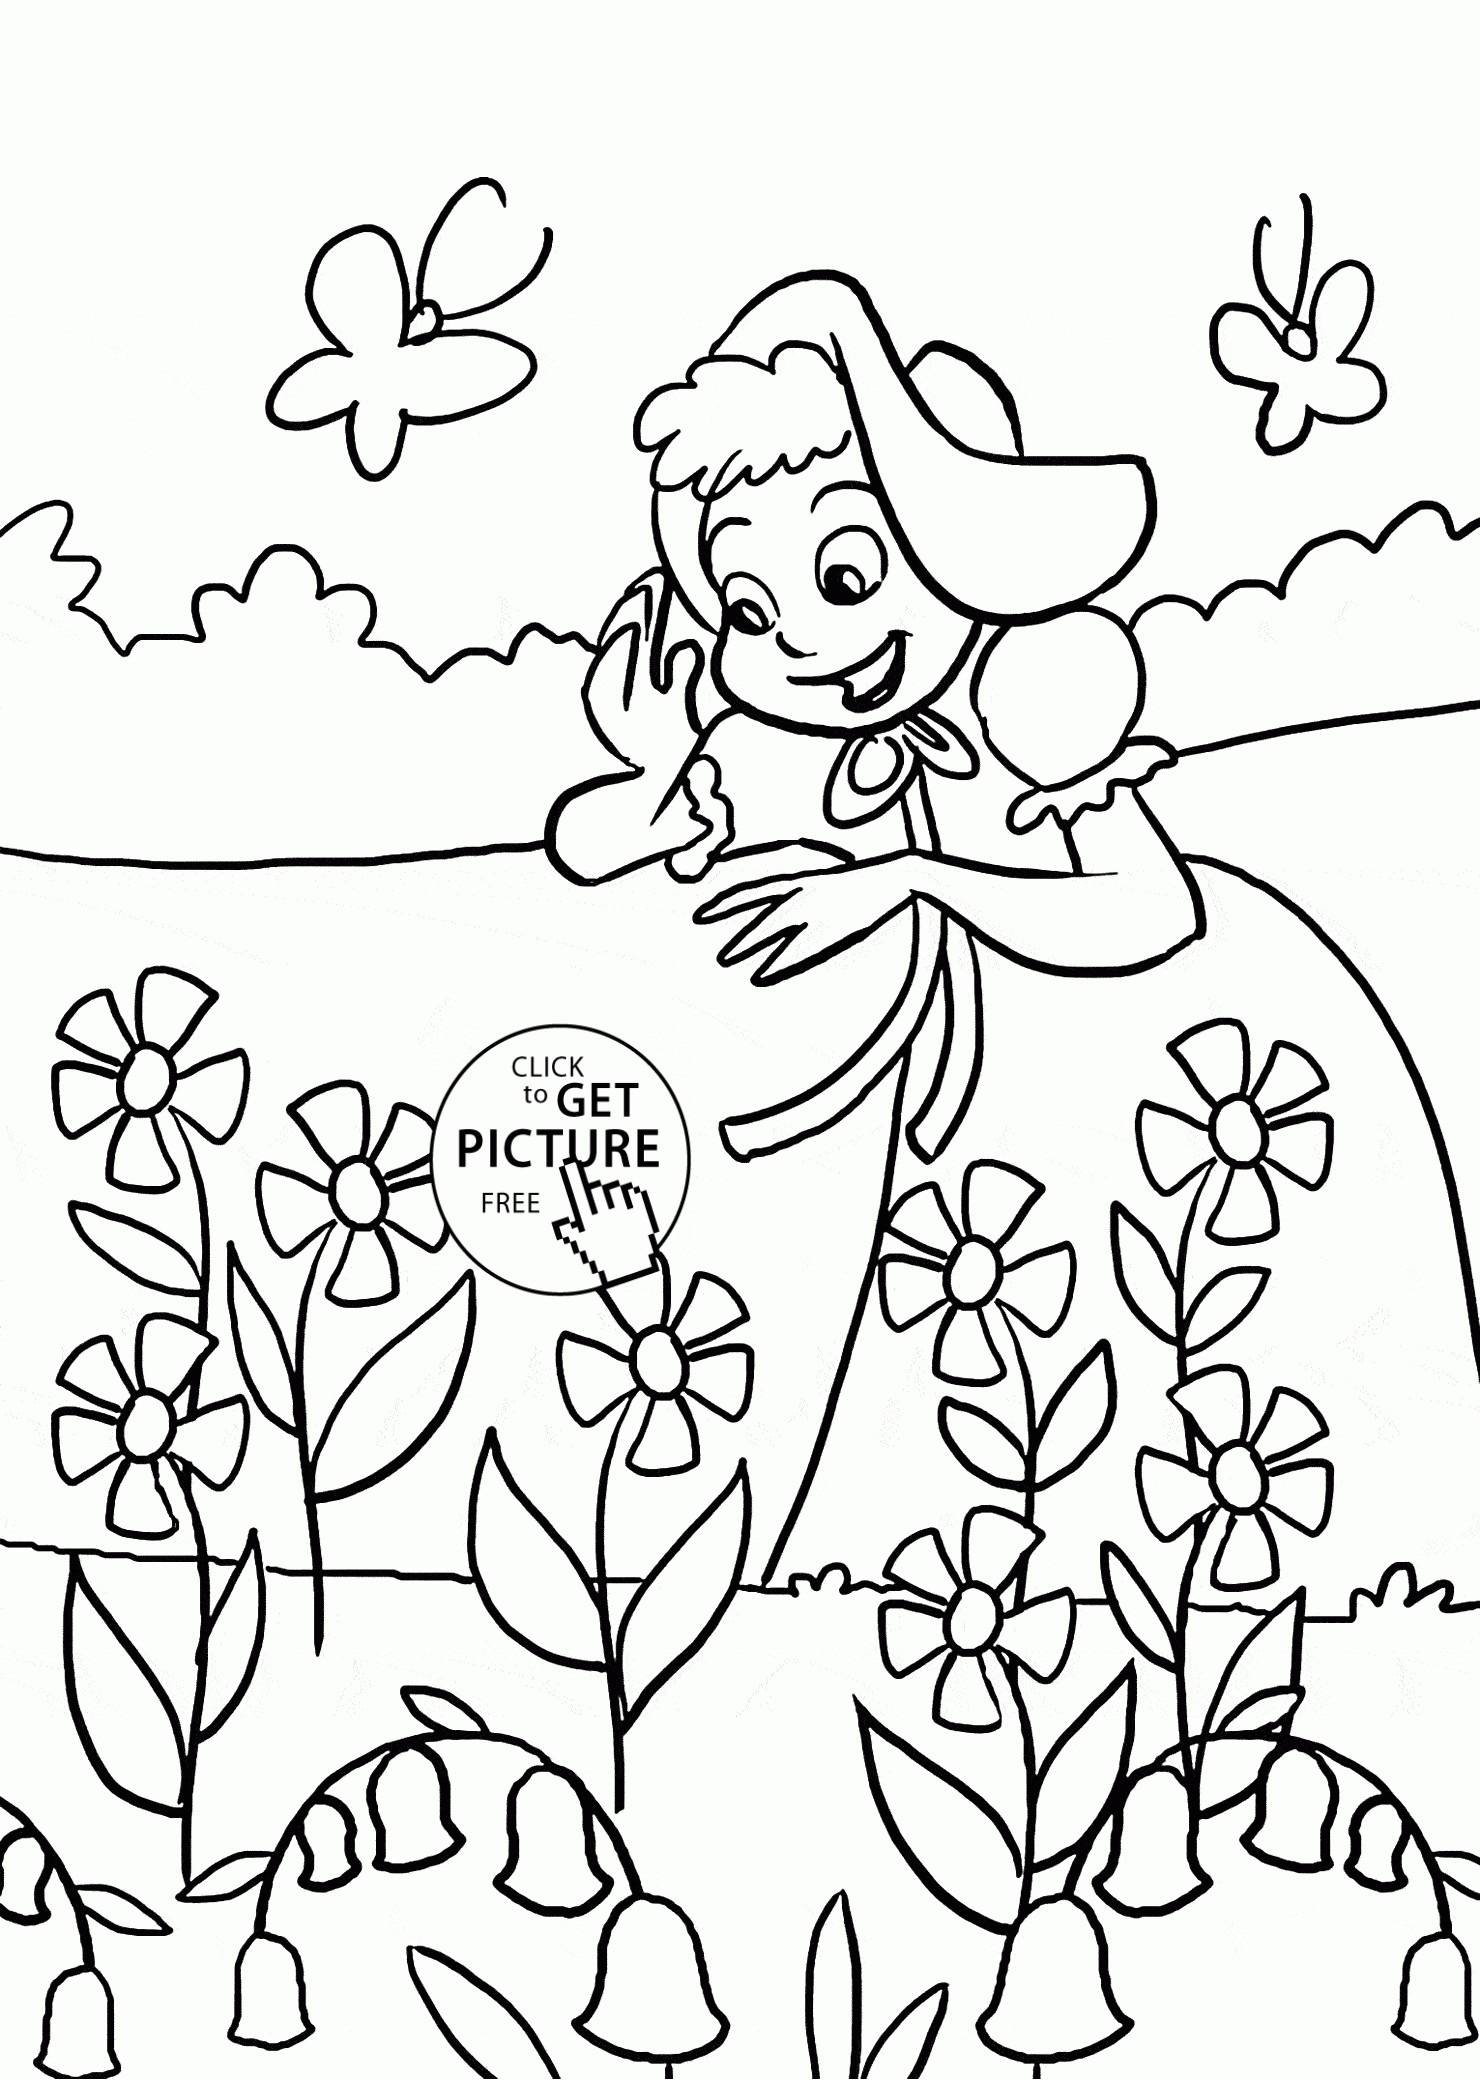 1480x2080 Spring Coloring Pages Rabbit For Kids Elegant Drawing For Kids